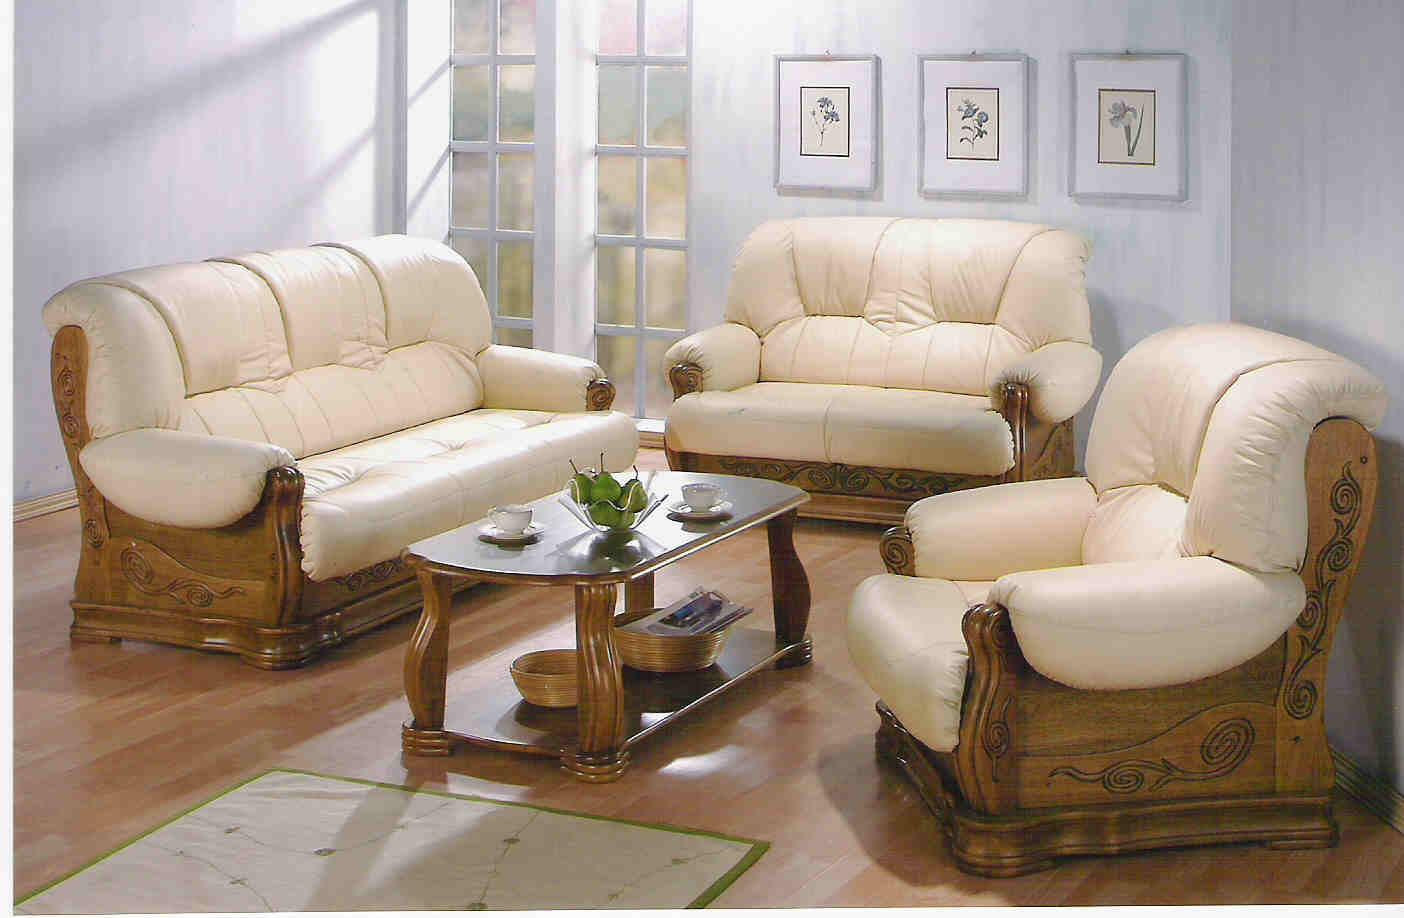 Designs of sofa set